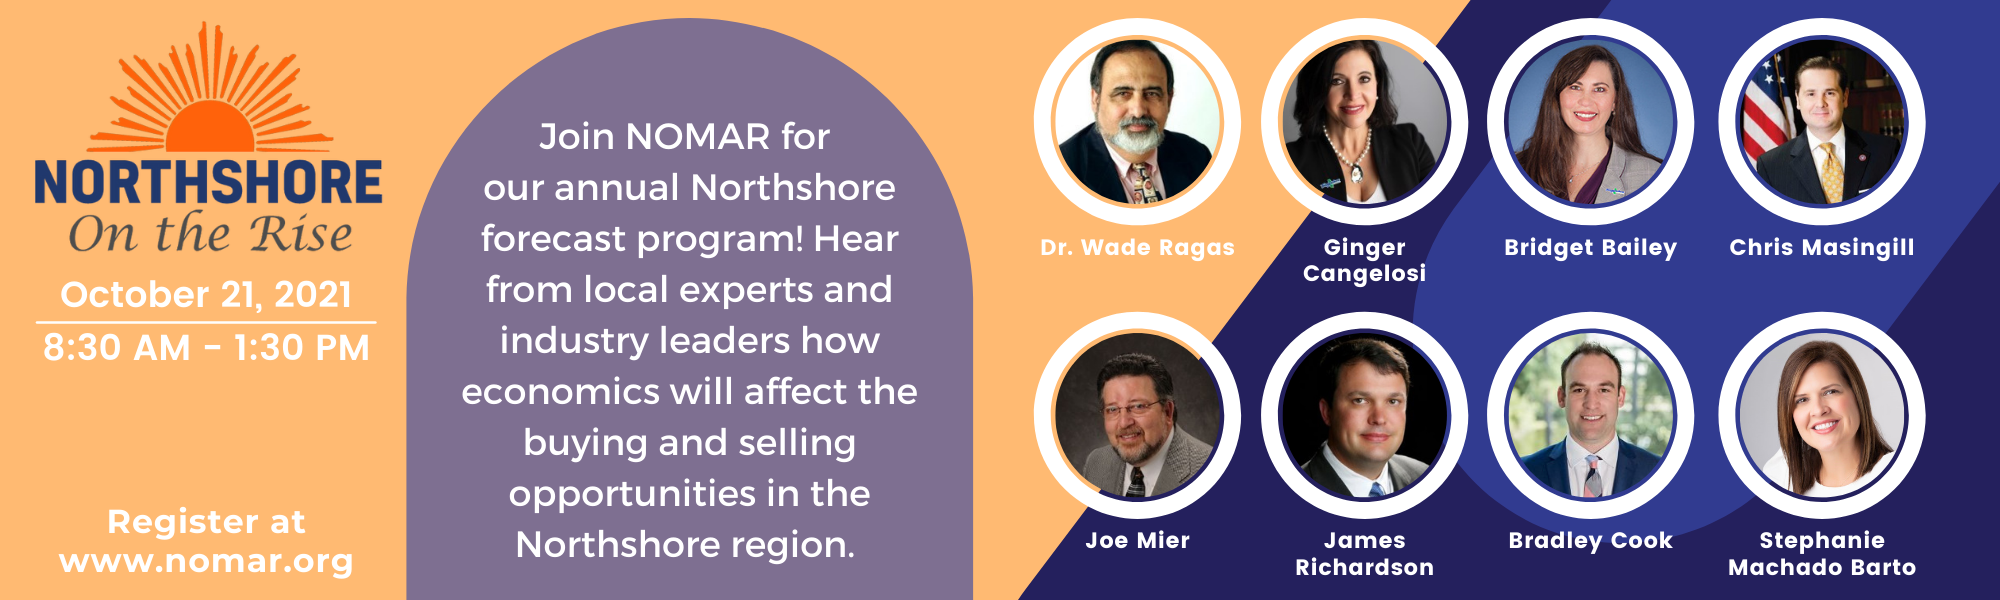 Northshore On the Rise Forecast Event